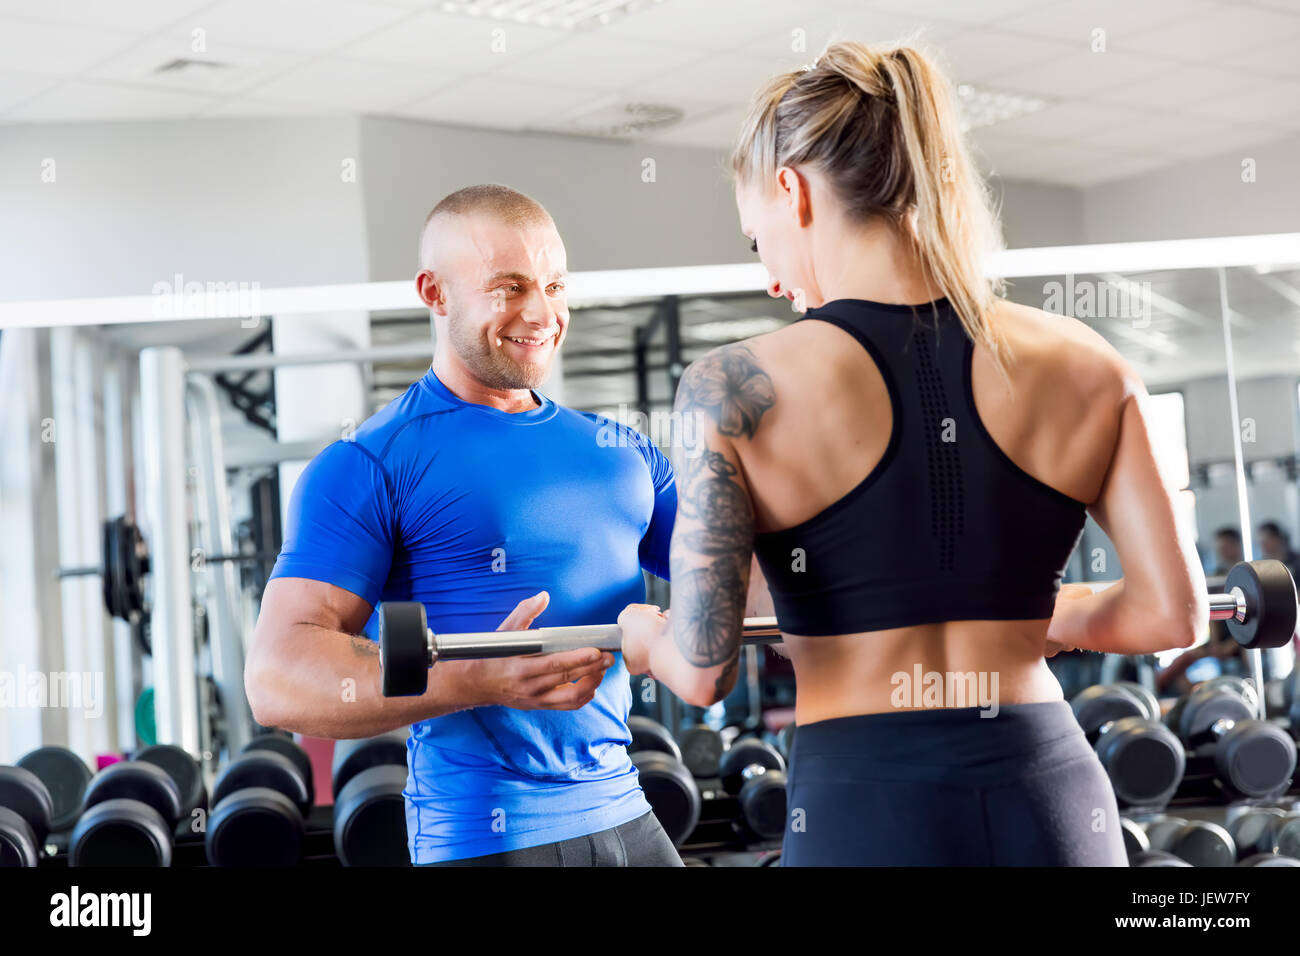 Personal trainer corrects and motivates while bodybuilding training at the gym. Professional help during workout. Stock Photo